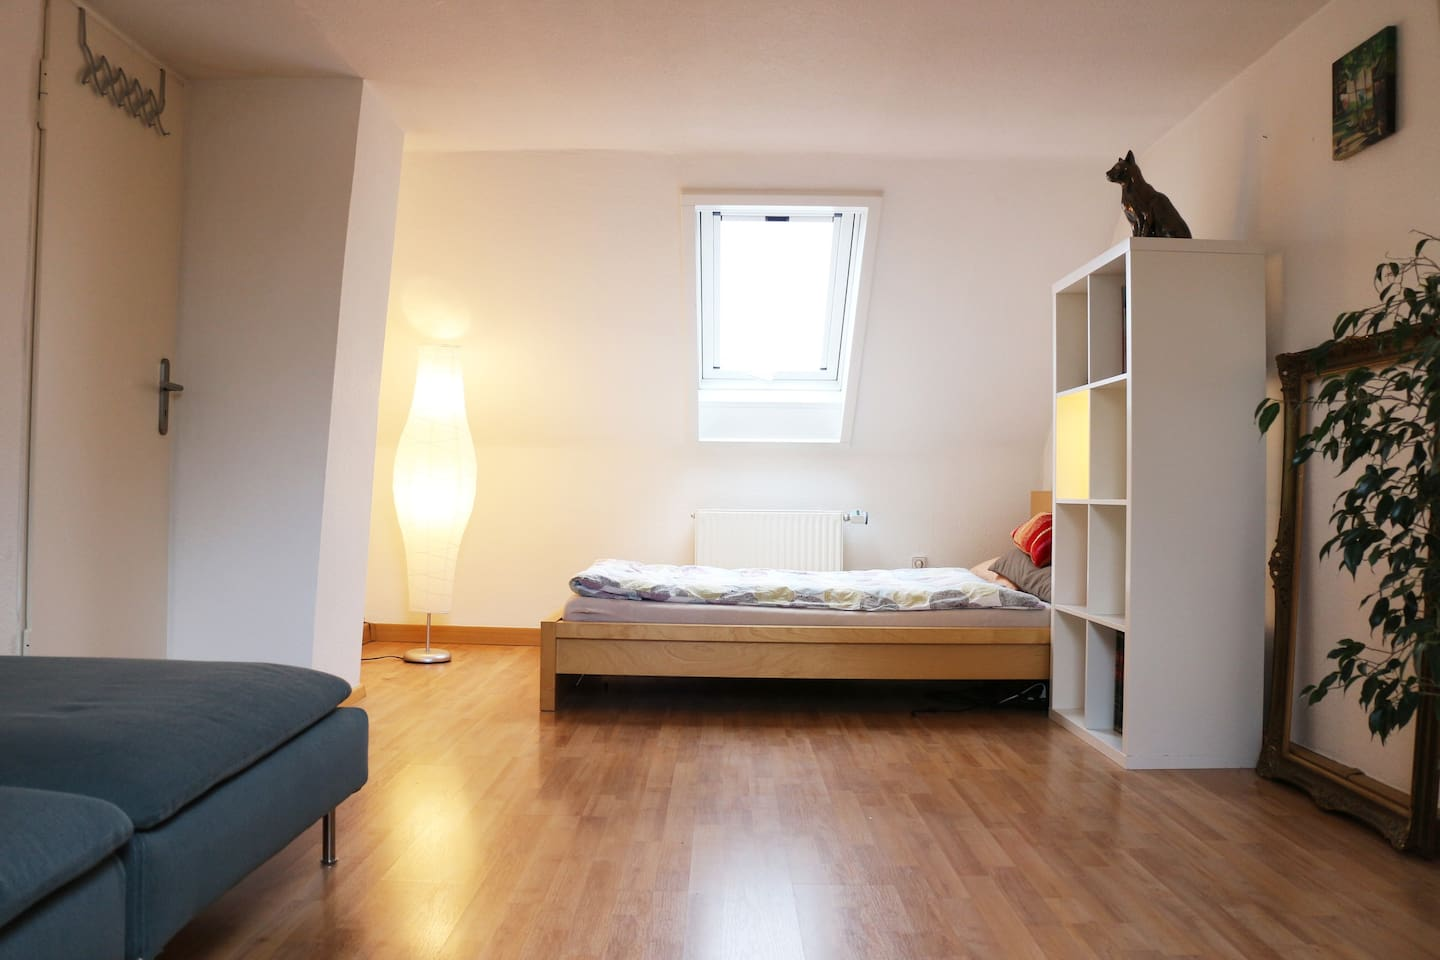 Cozy Loft Room with one double bed and one sofa, which can be used as bed aswell